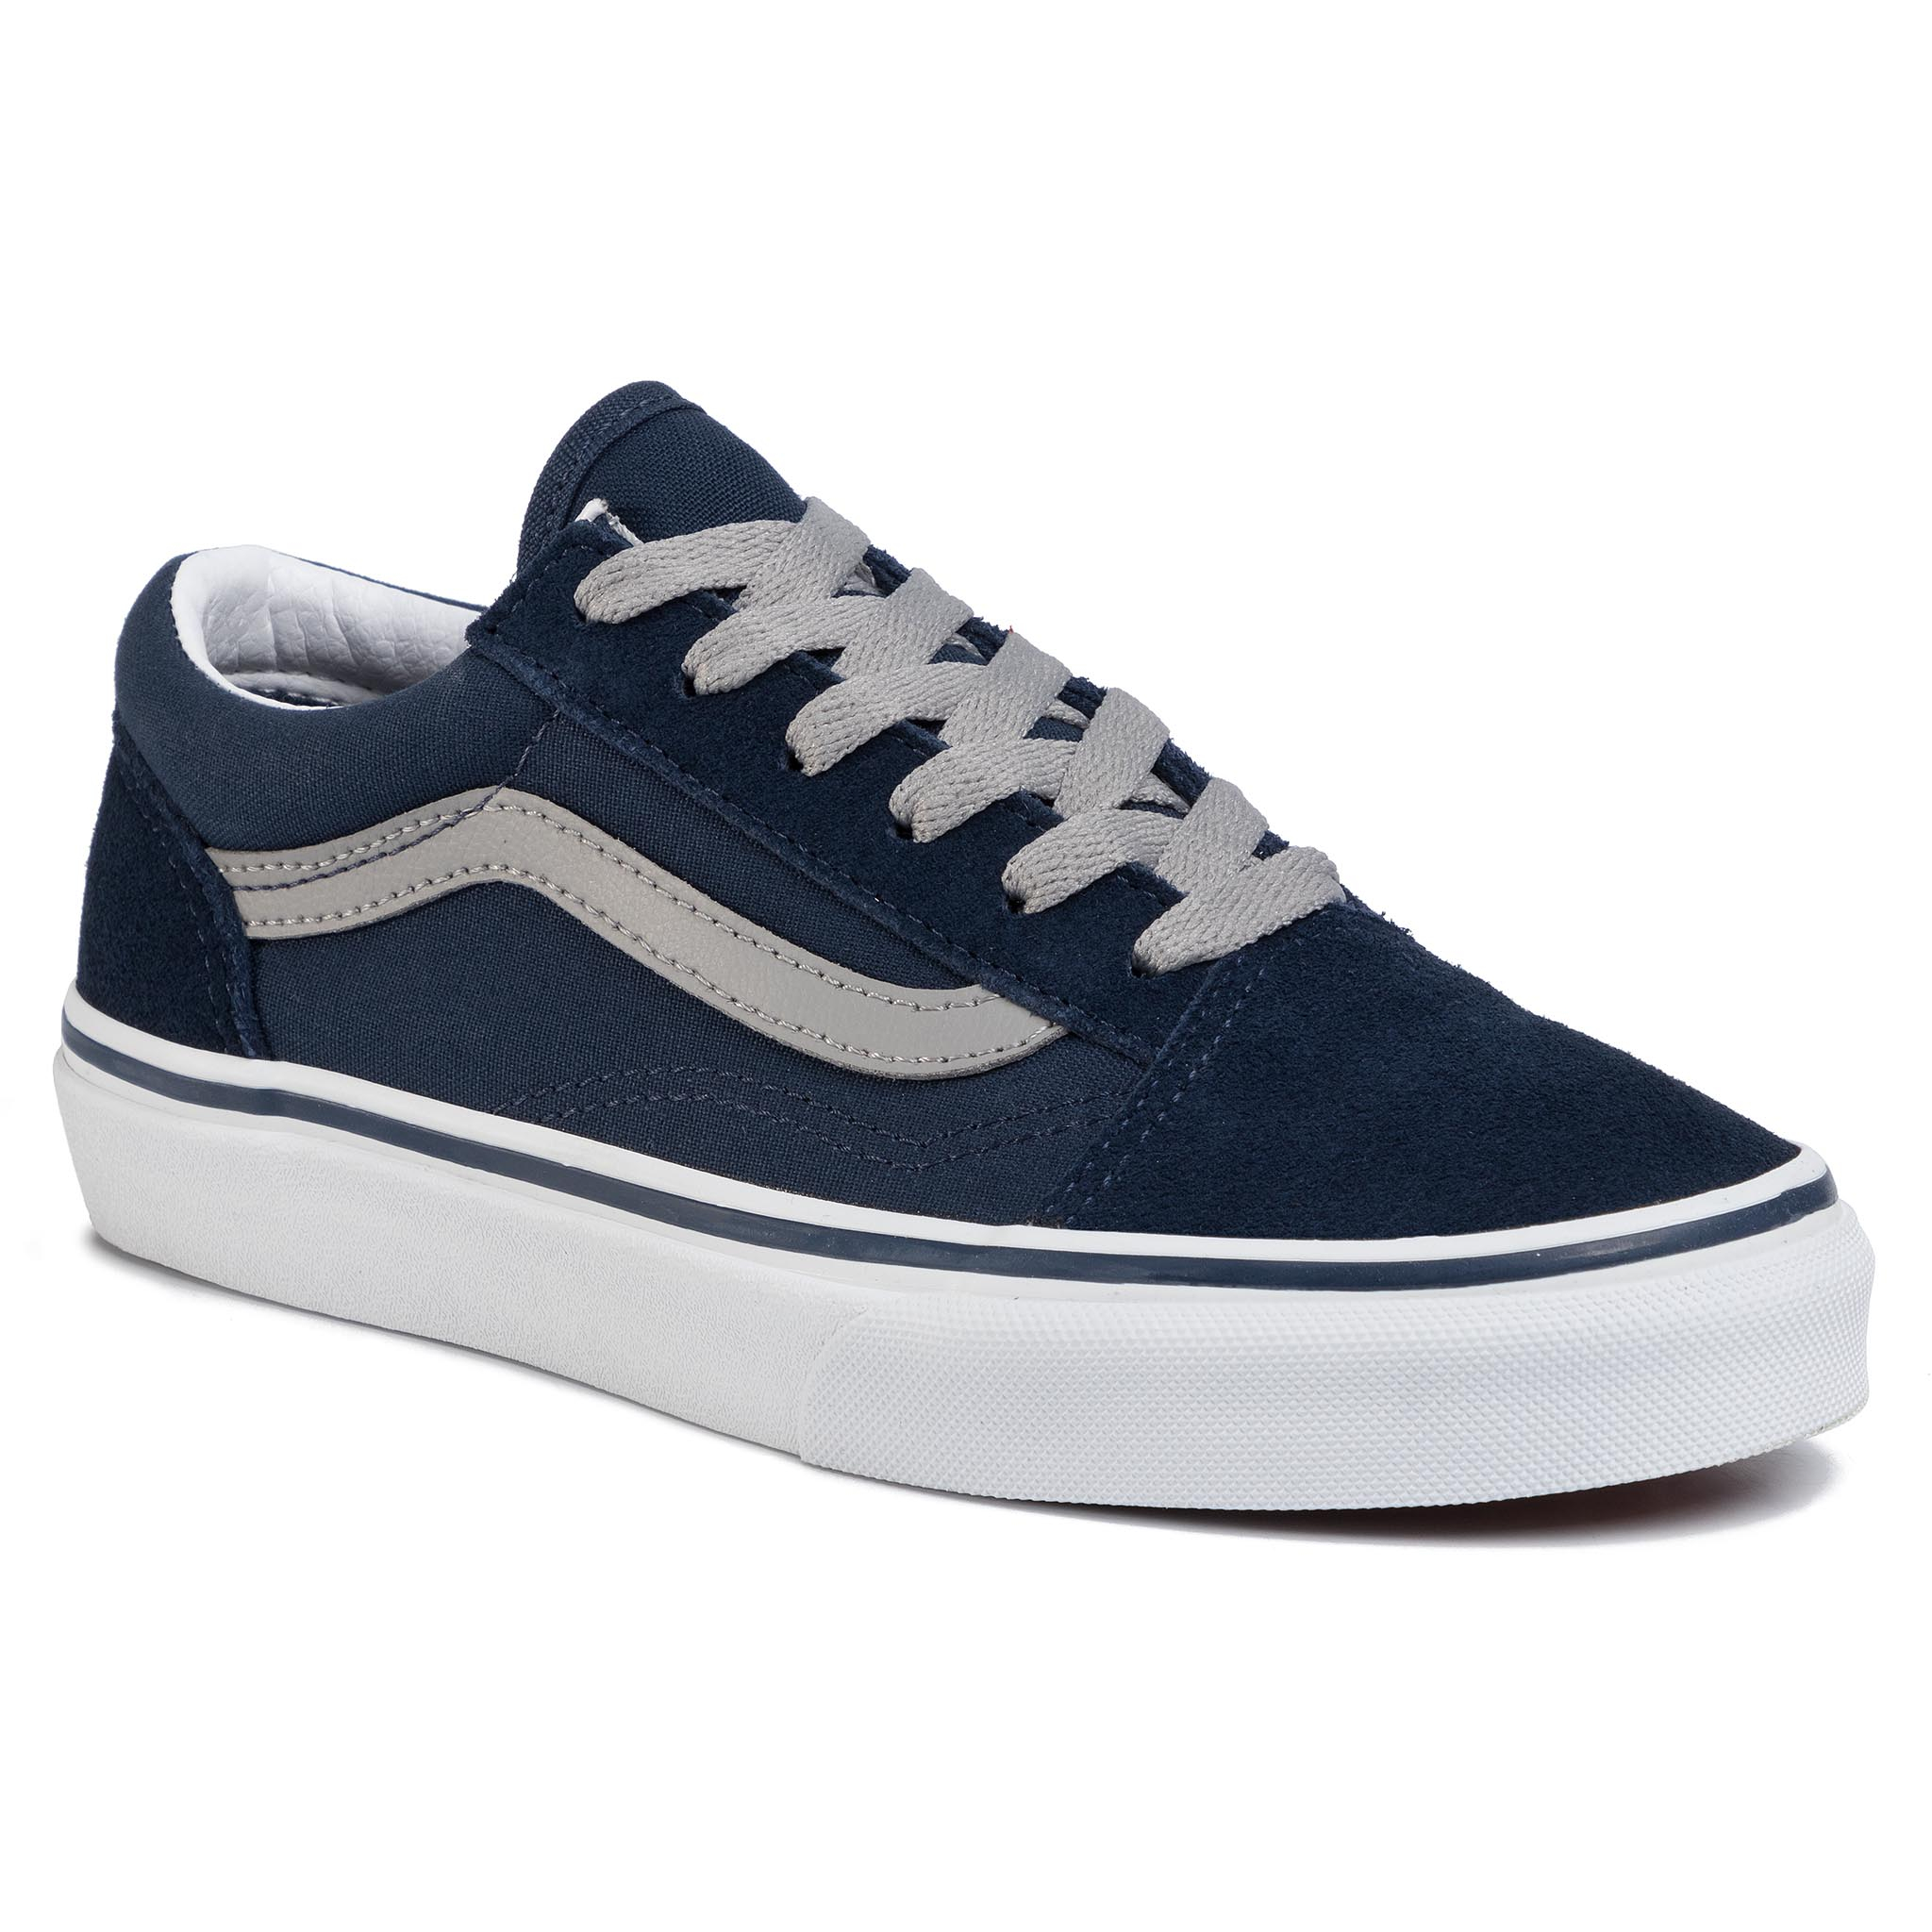 Teniși VANS - Old Skool VN0A4UHZWKN1 Dress Blues/Drizzle